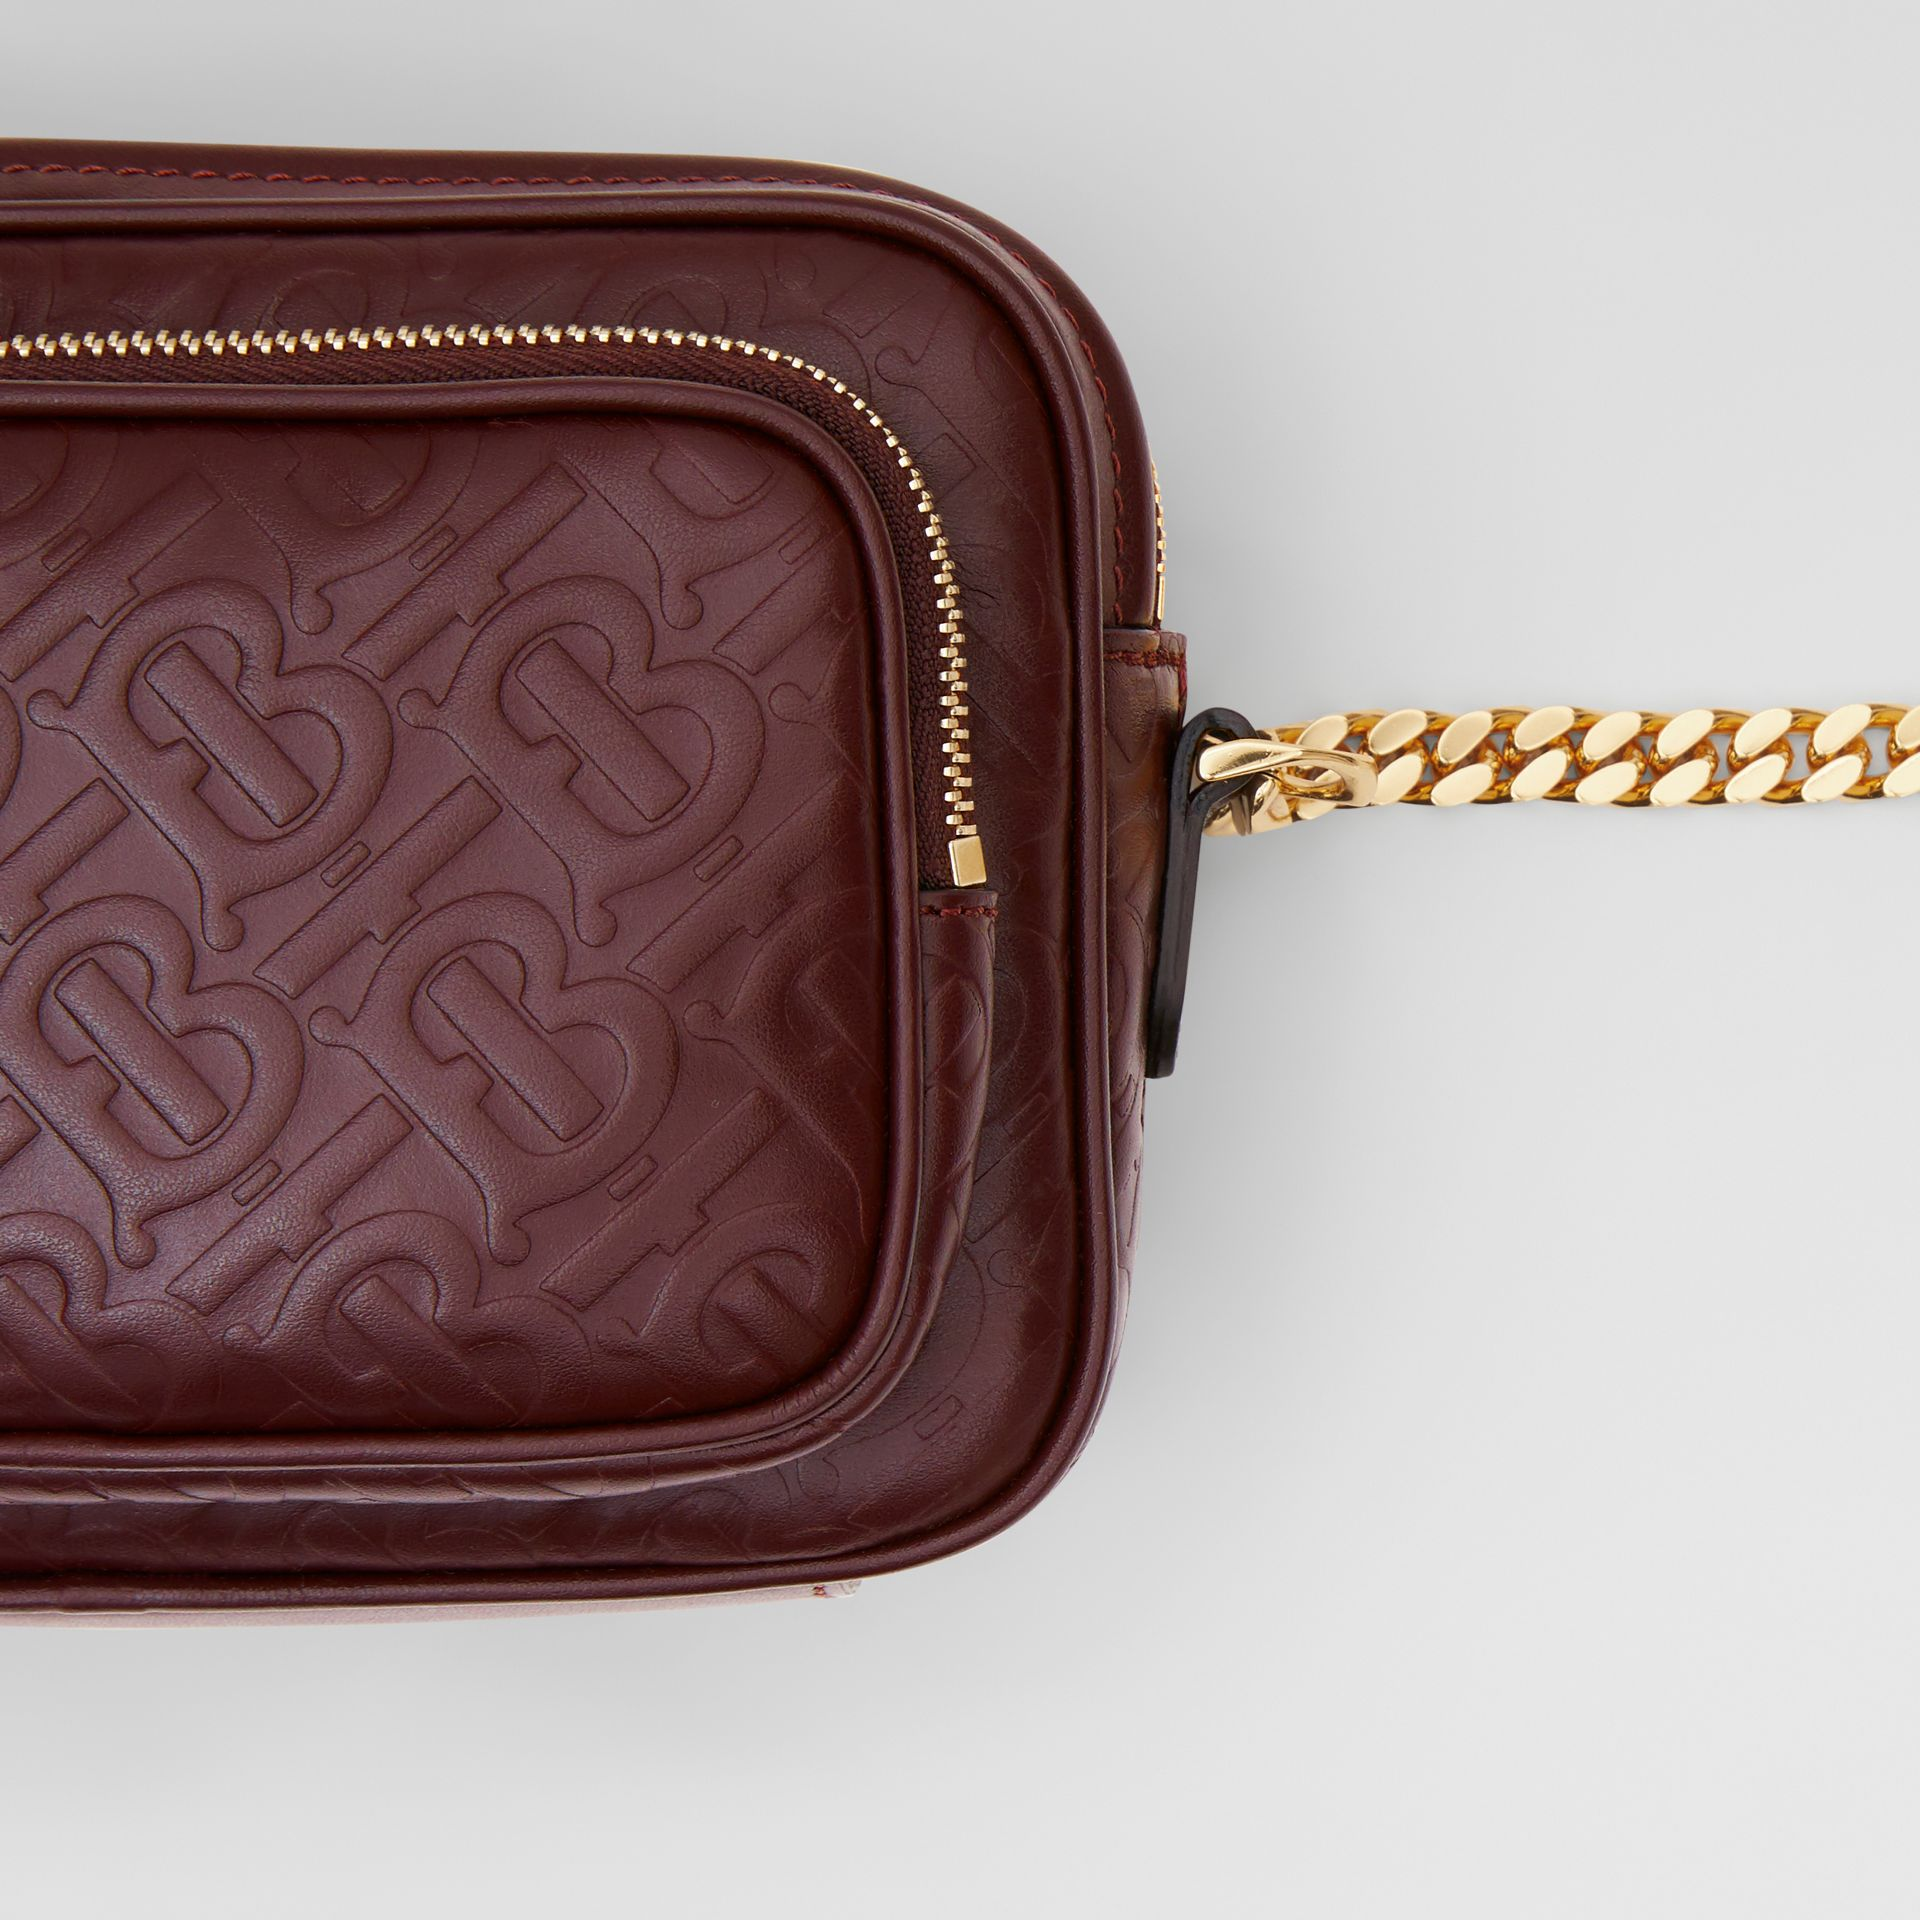 Monogram Leather Camera Bag in Dark Burgundy - Women | Burberry - gallery image 1